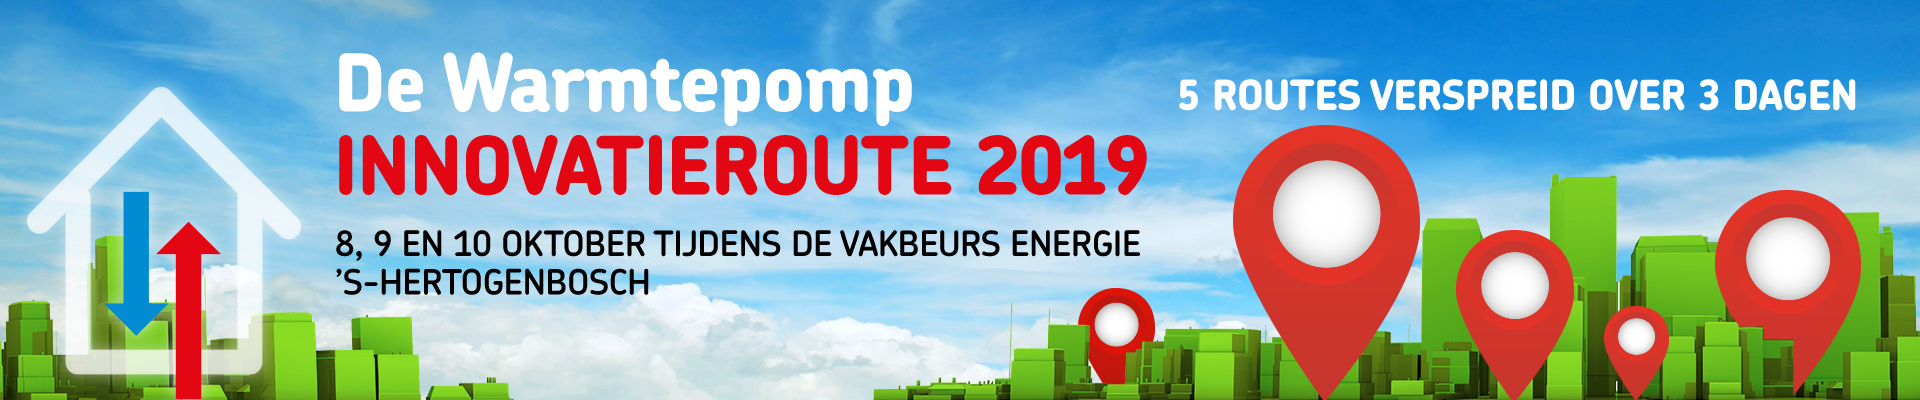 Warmtepomp innovatieroute